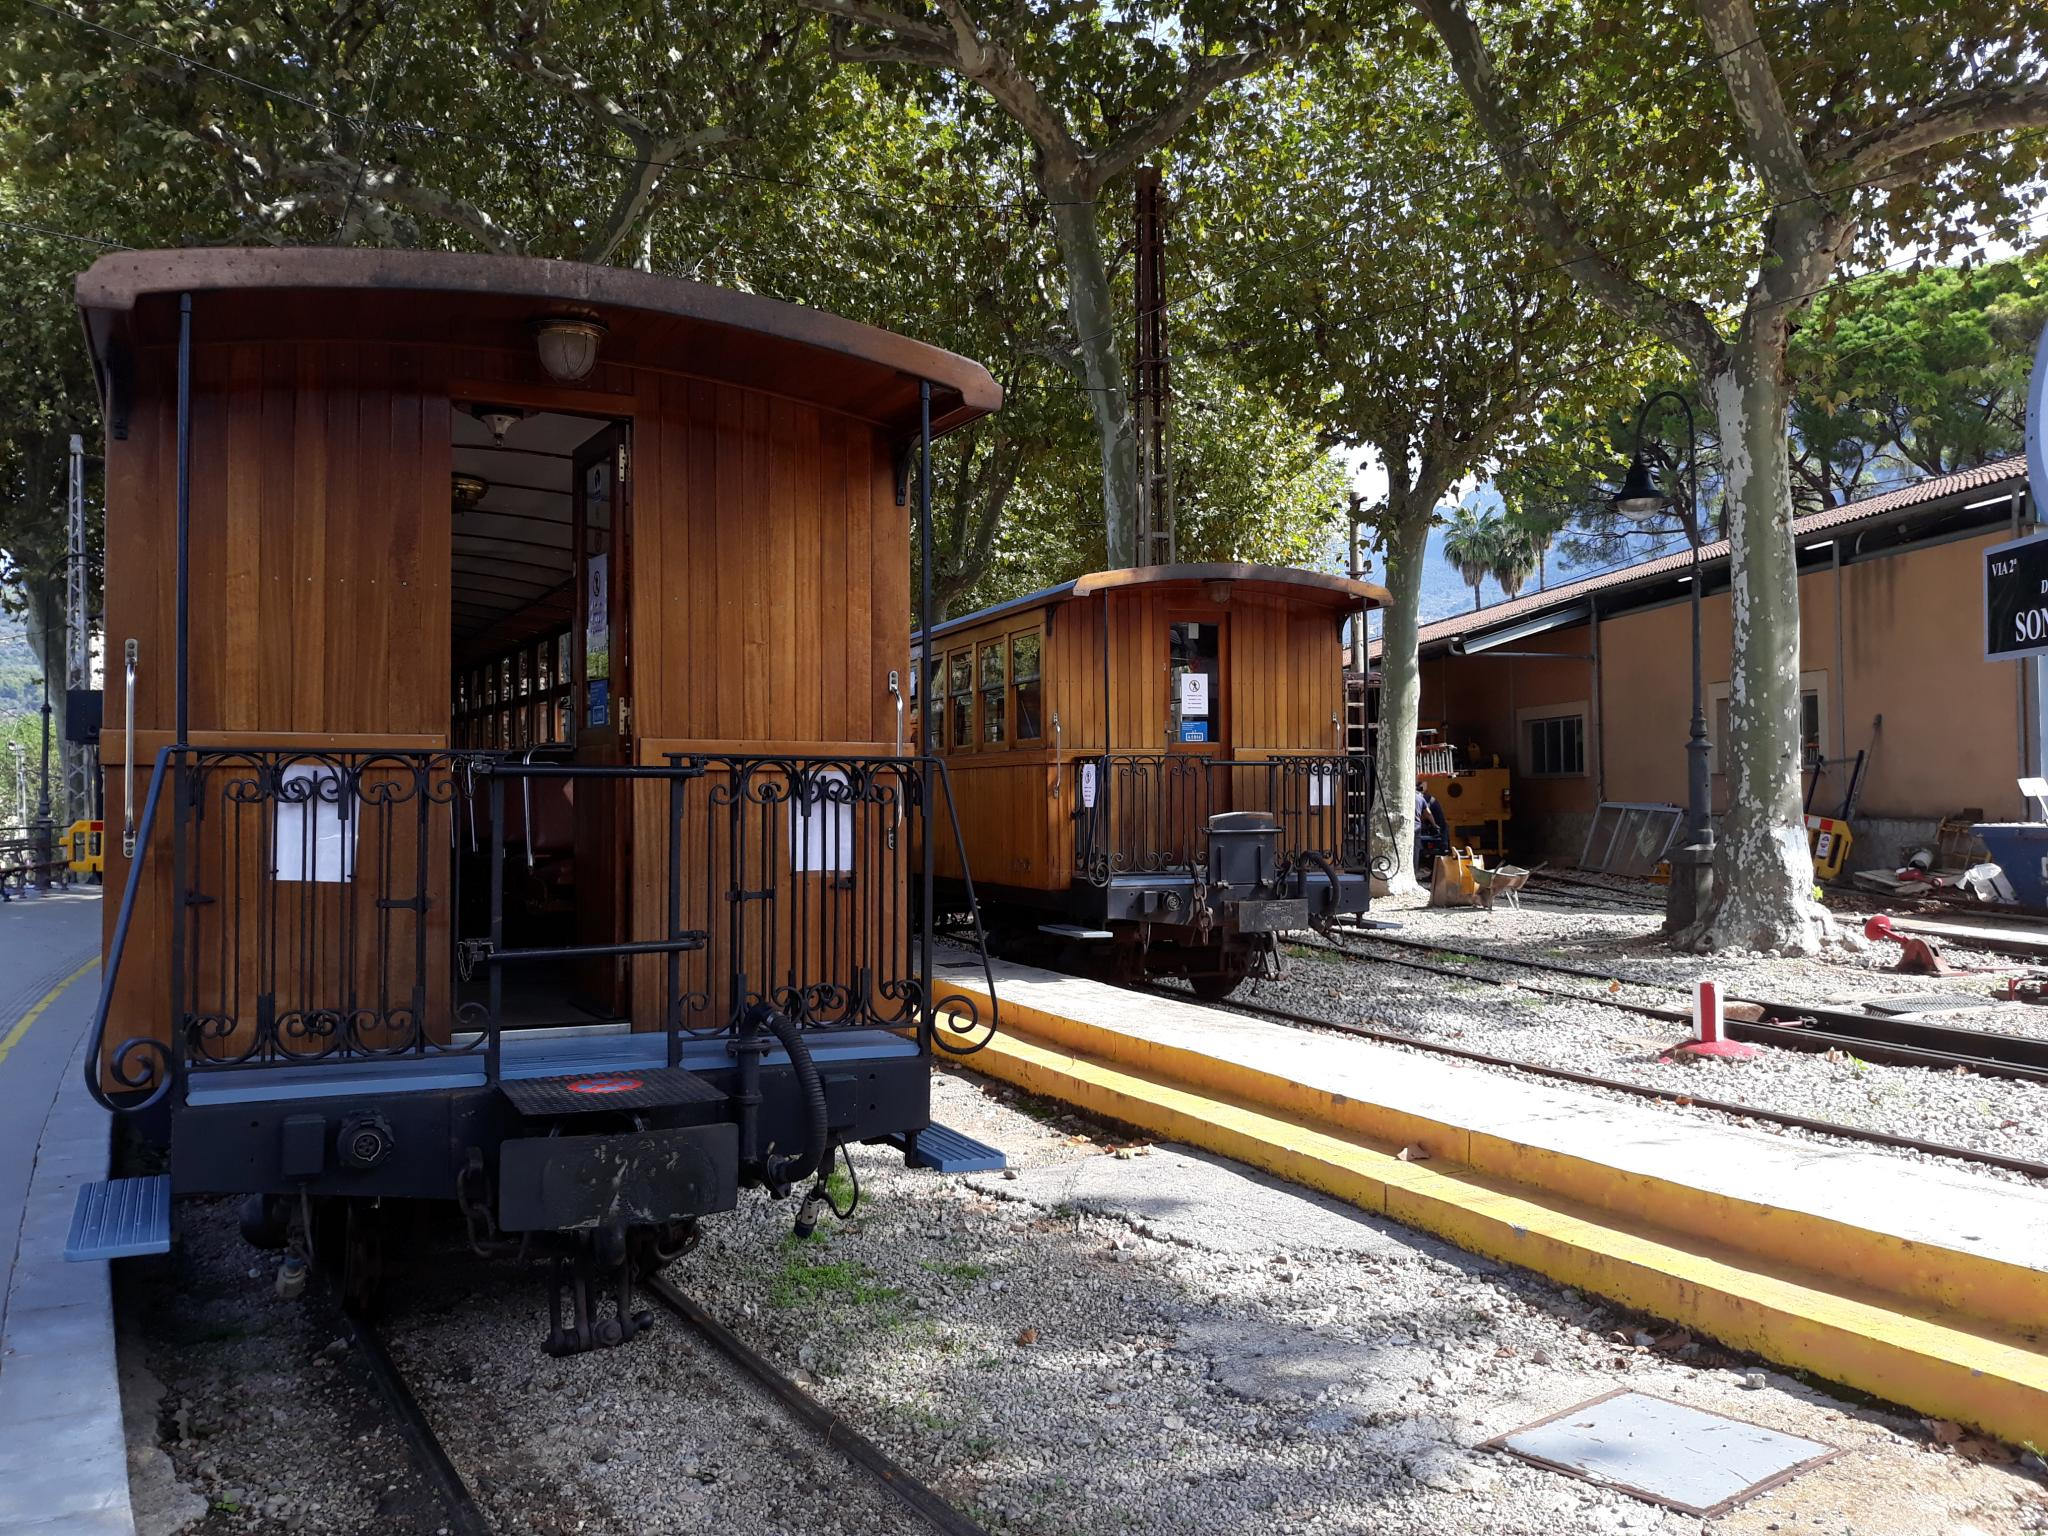 Soller train is up and running